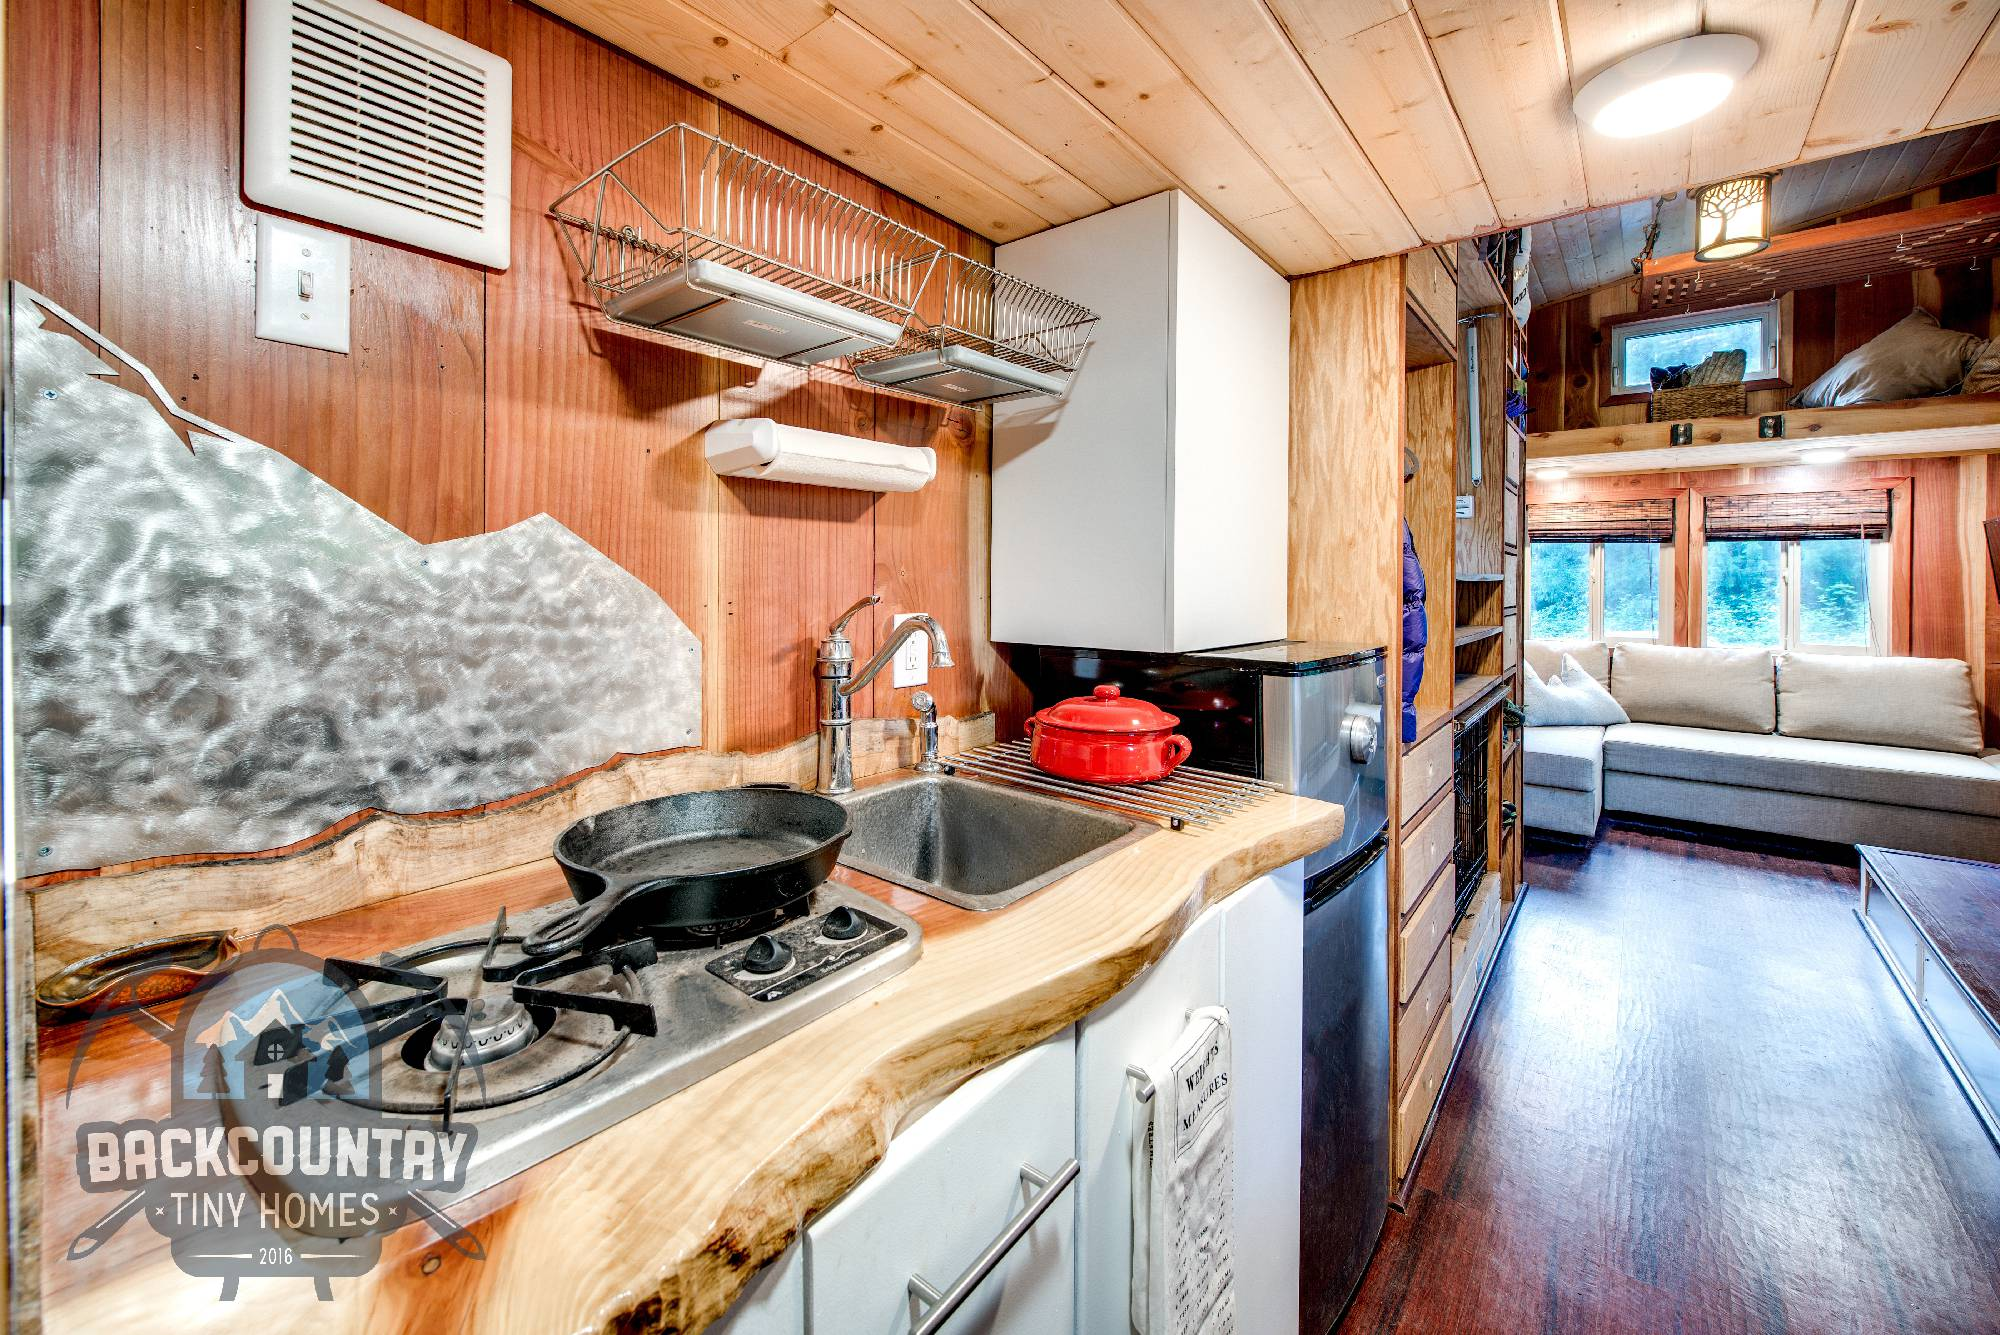 backcountry basecamp tiny house kitchen 2 - Tiny House Kitchen 2